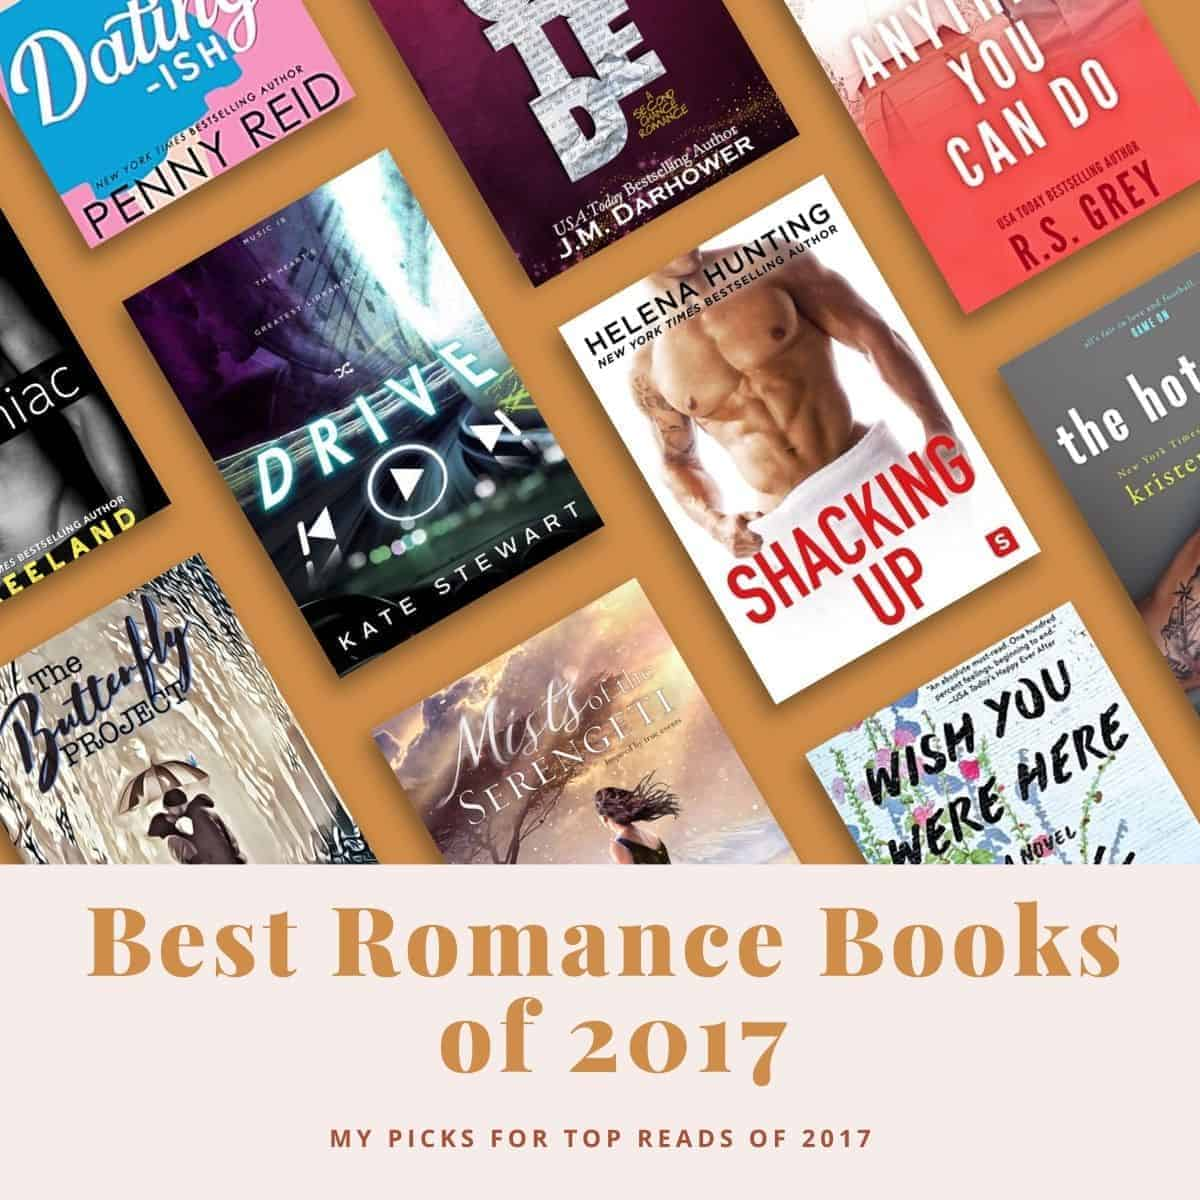 Totally Bex's list of the best romance books read in 2017 (including romantic comedy, sports romance, dark romance, historical fiction, mature YA, & more!)